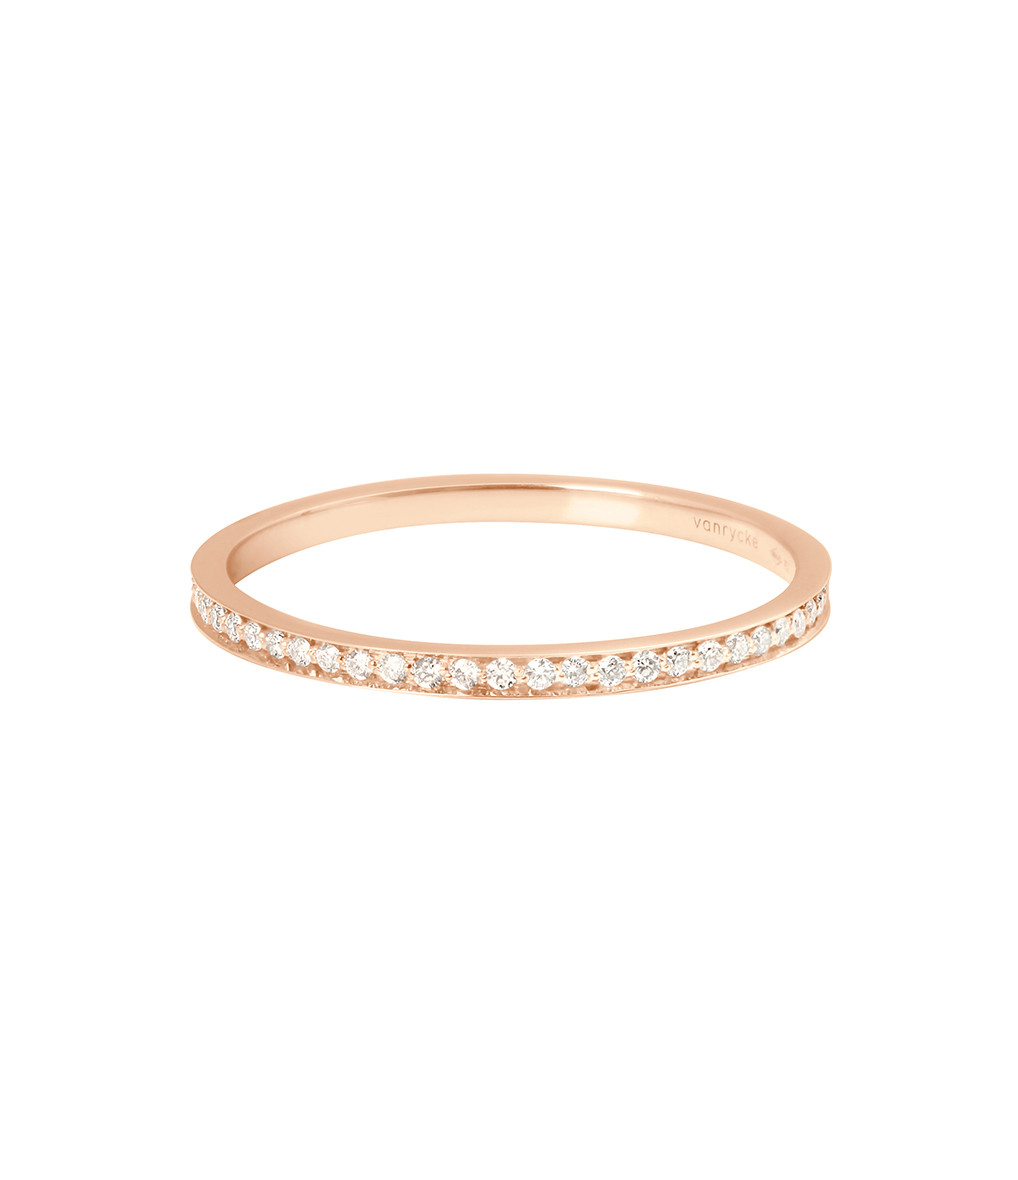 VANRYCKE - Bague Officiel Or Rose Diamants